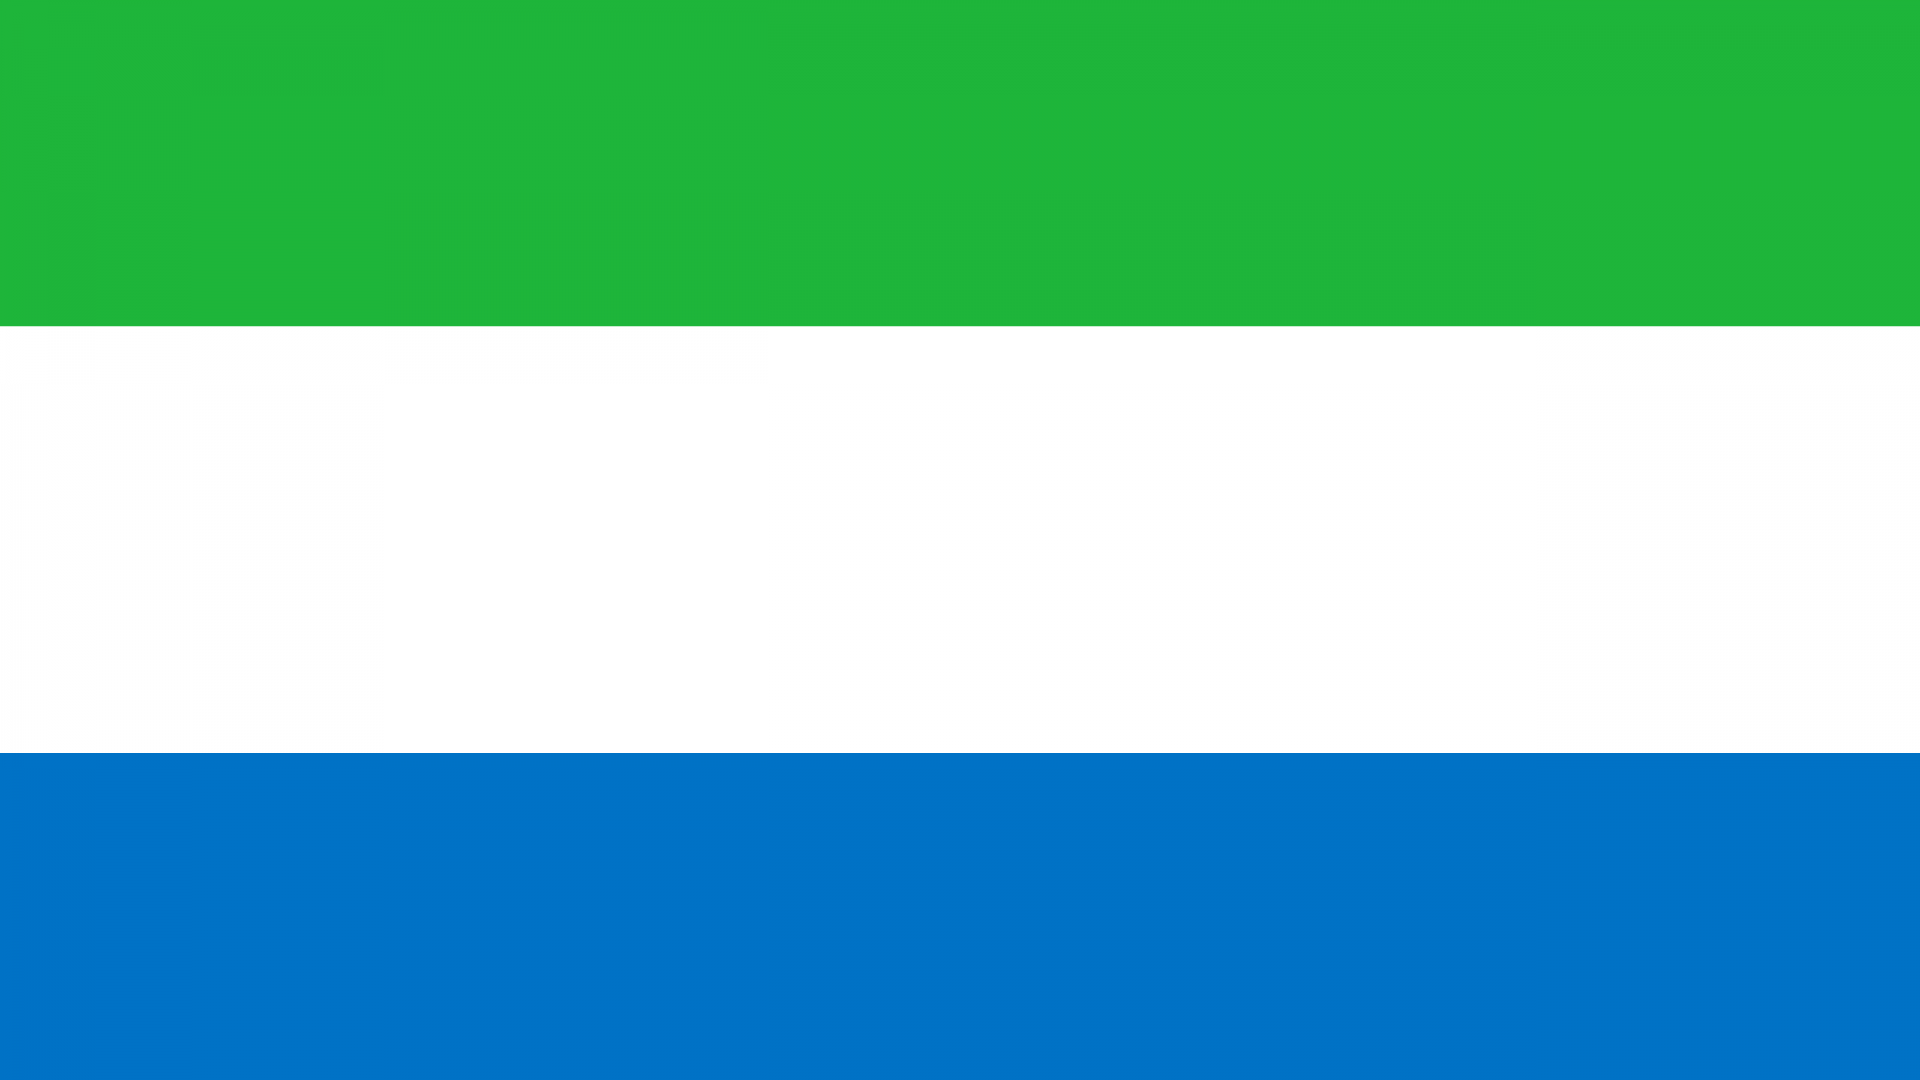 Sierra Leone Flag - Wallpaper, High Definition, High Quality, Widescreen